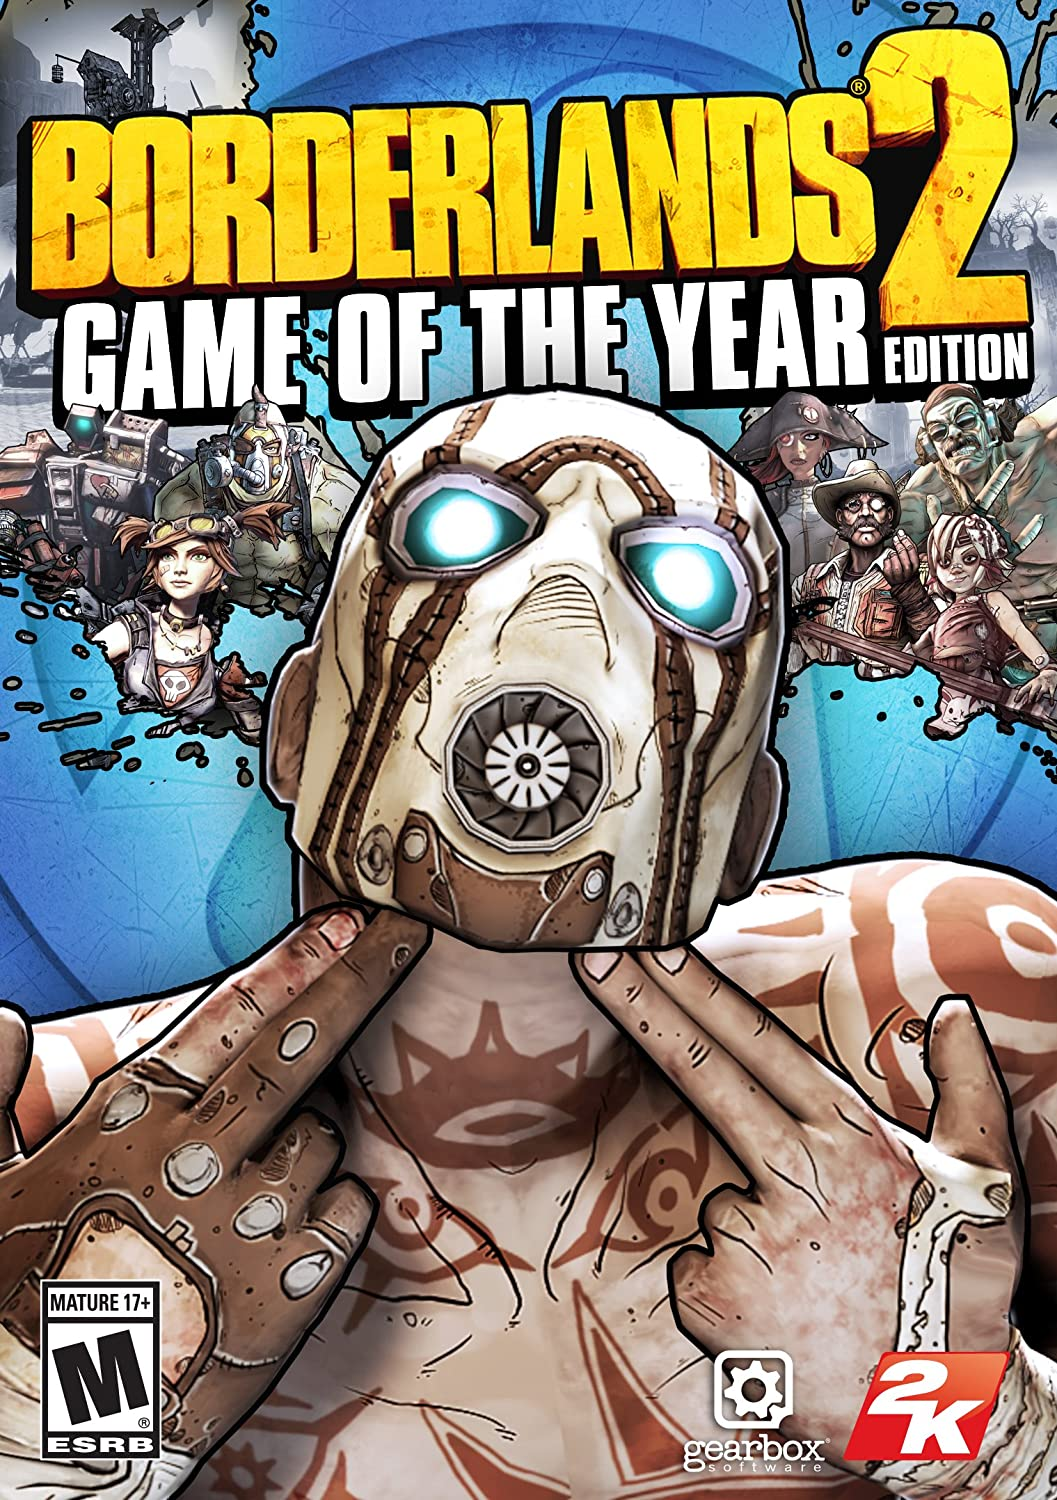 Borderlands 2 Official Strategy Guide Pdf